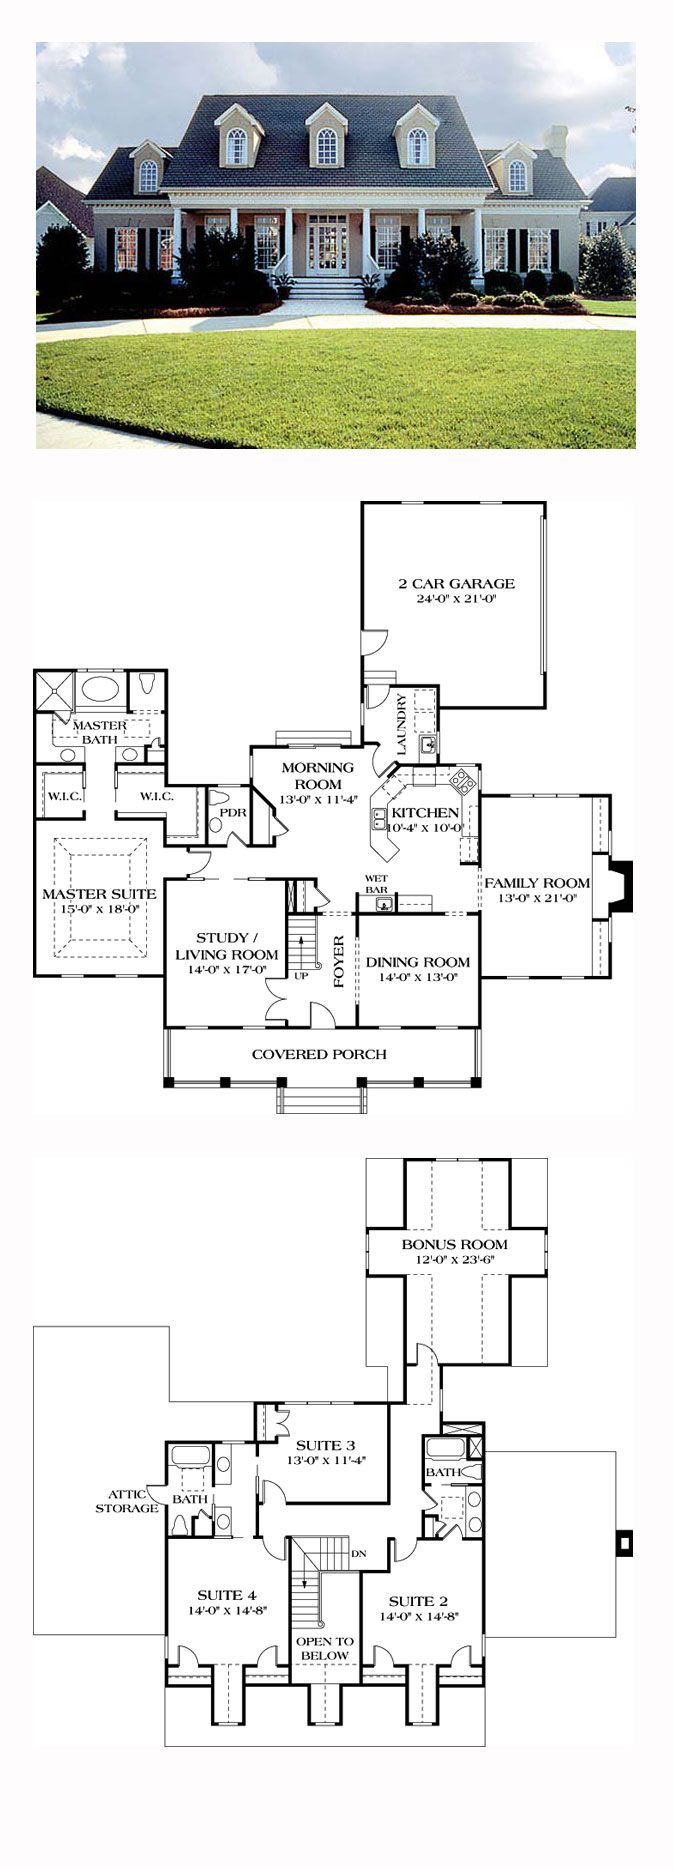 Country House Plan 85454 | Total Living Area: 3338 sq. ft., 4 bedrooms and 3.5 bathrooms. The floor plan is completely up-to-date beginning with an open entry foyer flanked by the formal living room and dining room. The master suite offers dual walk-in closets as well as a trayed ceiling in the bedroom. #countryhome